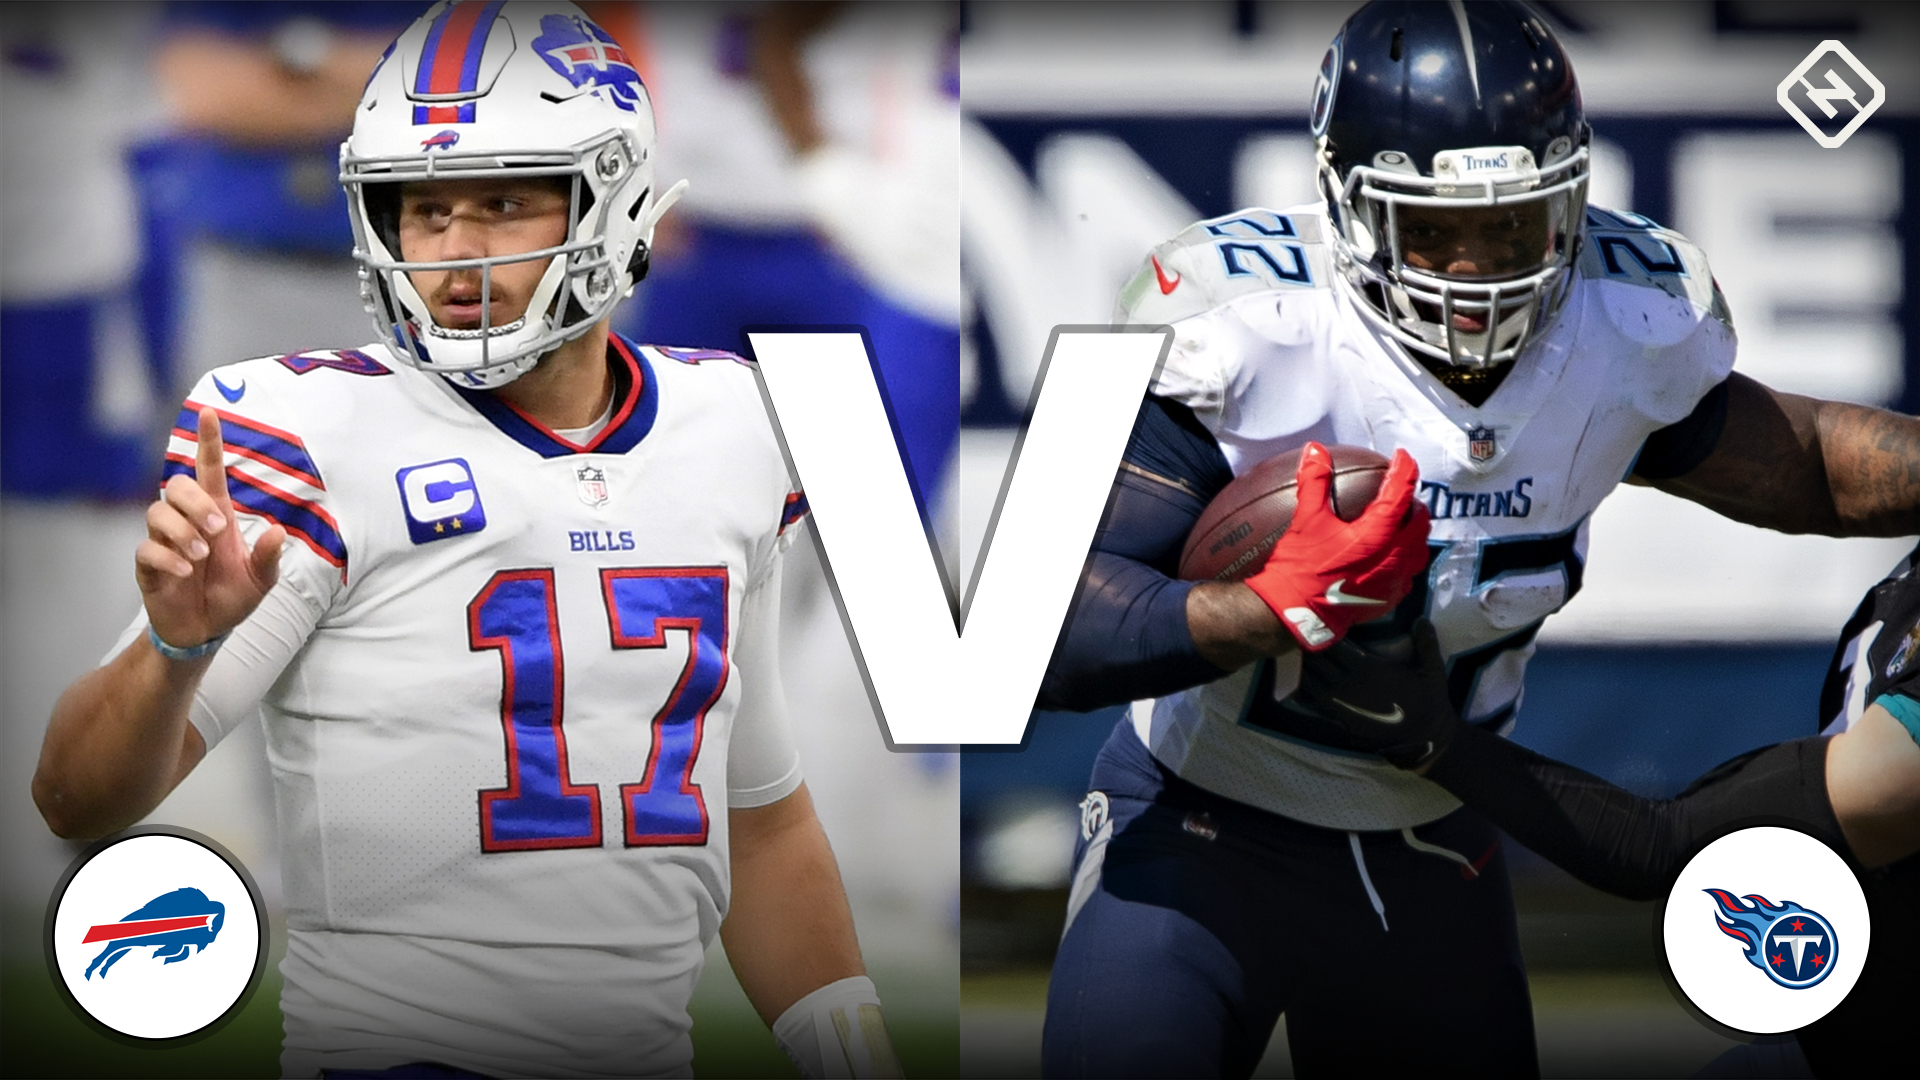 Bills vs. Titans live score, updates, highlights from NFL's Tuesday night football game